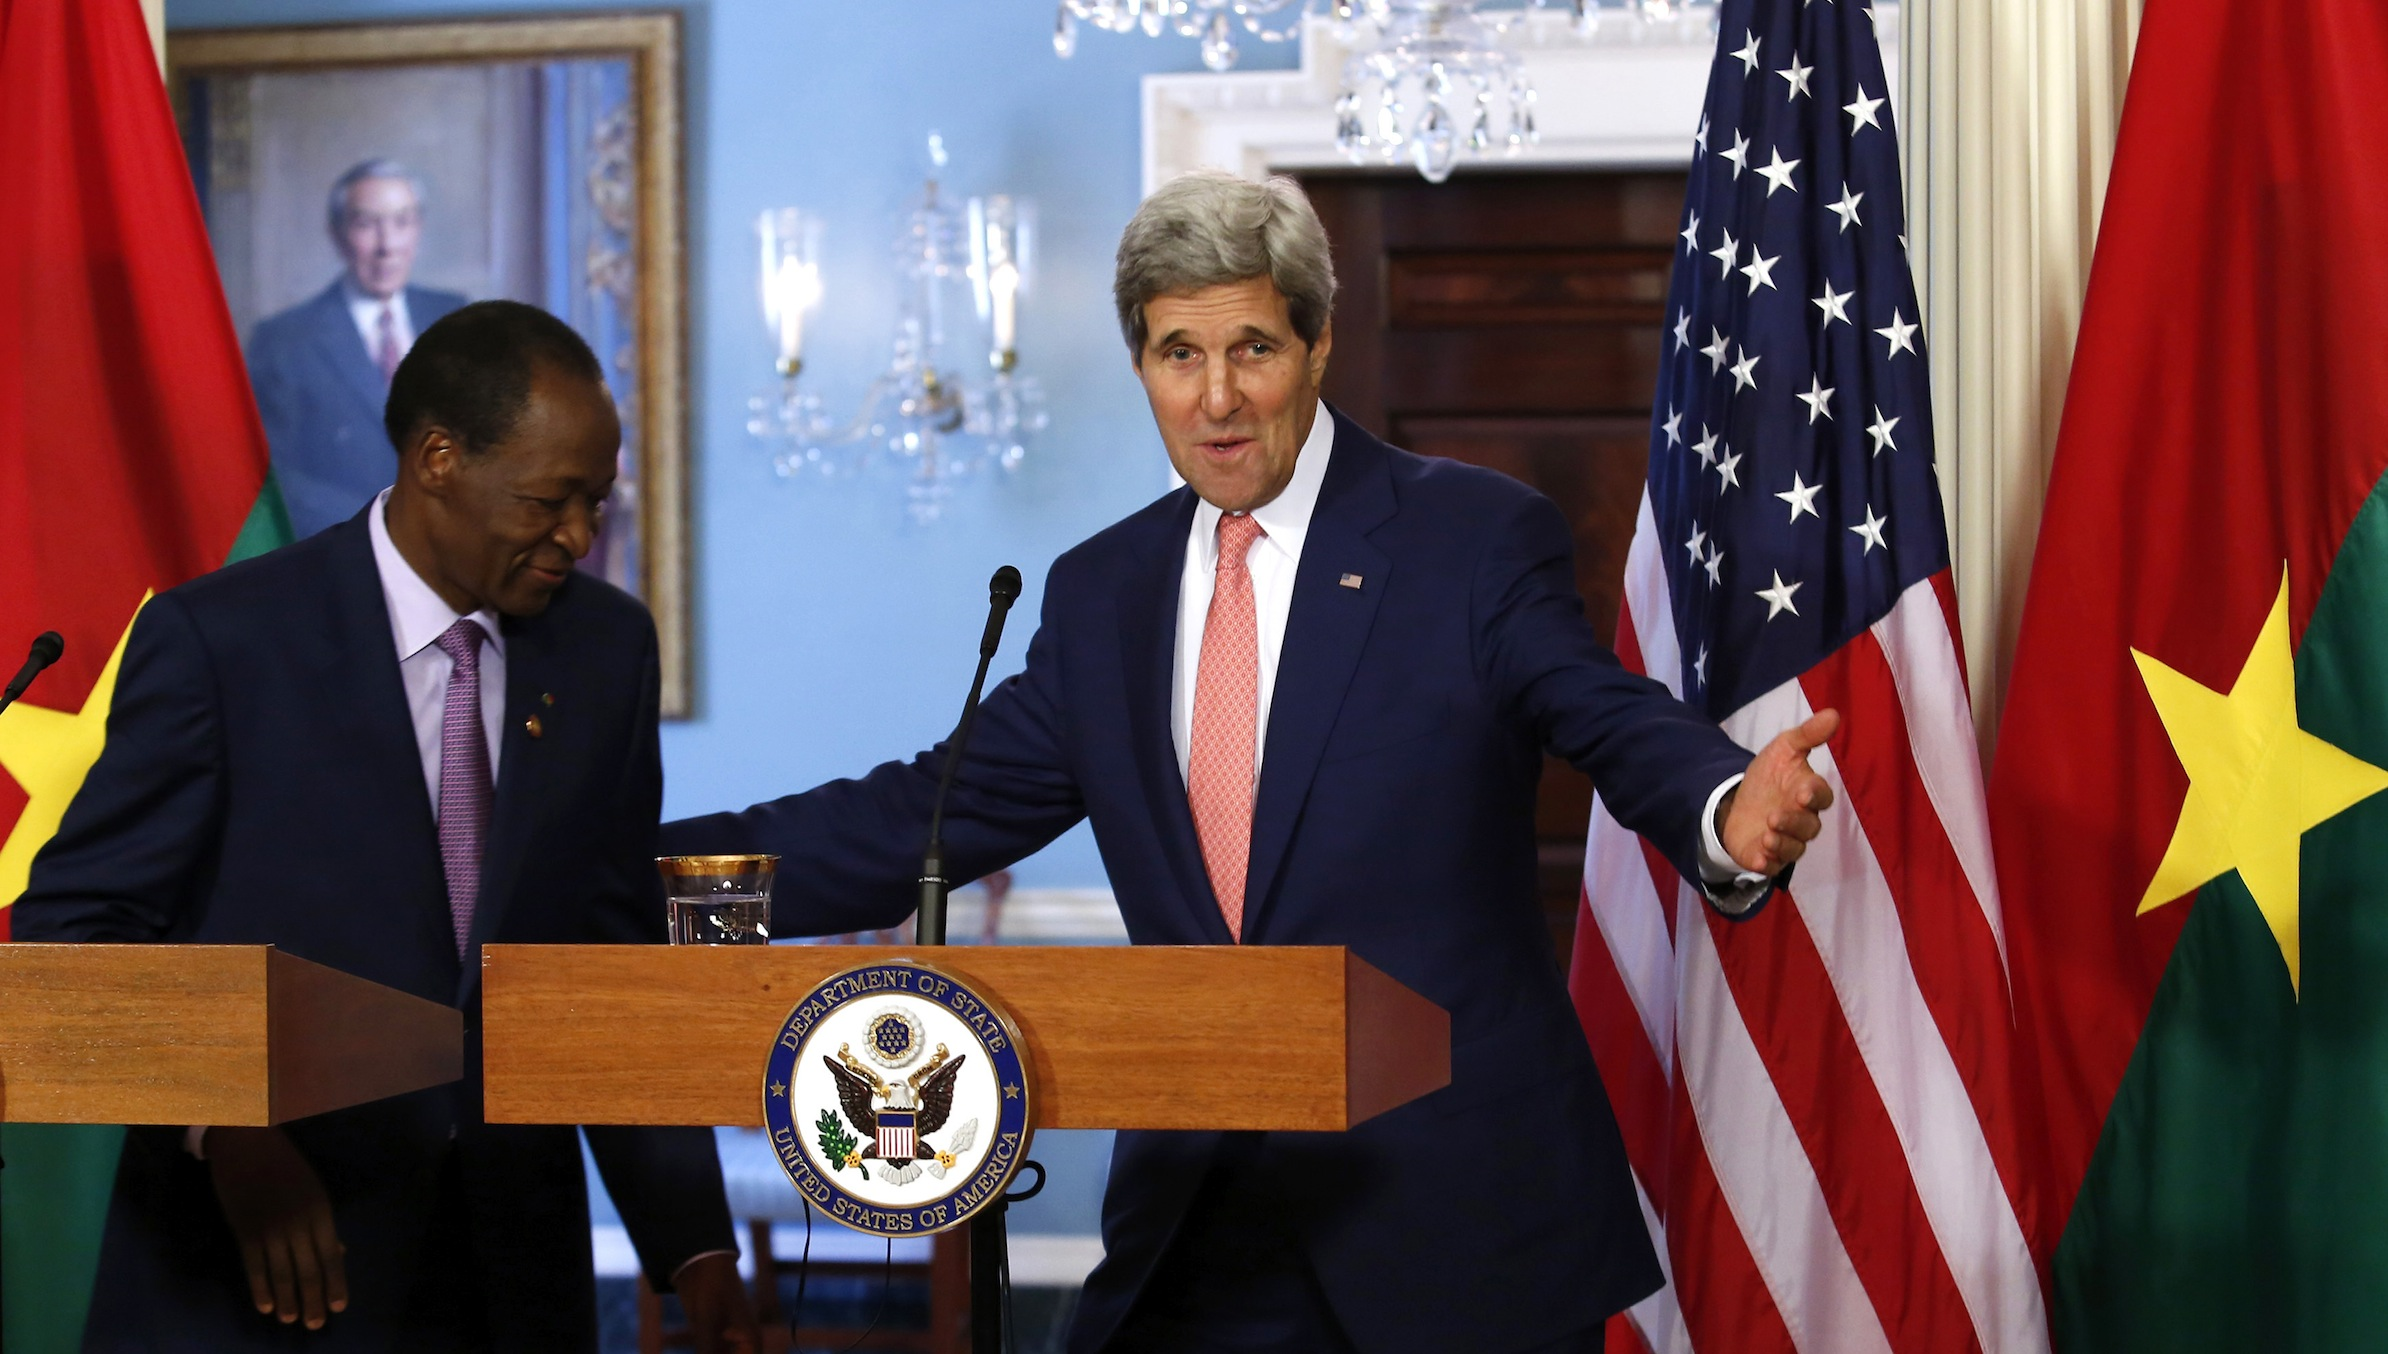 U.S. Secretary of State John Kerry (R) meets with Burkina Faso President Blaise Compaore at the State Department in Washington, August 4, 2014. REUTERS/Yuri Gripas (UNITED STATES - Tags: POLITICS) - RTR417Q3